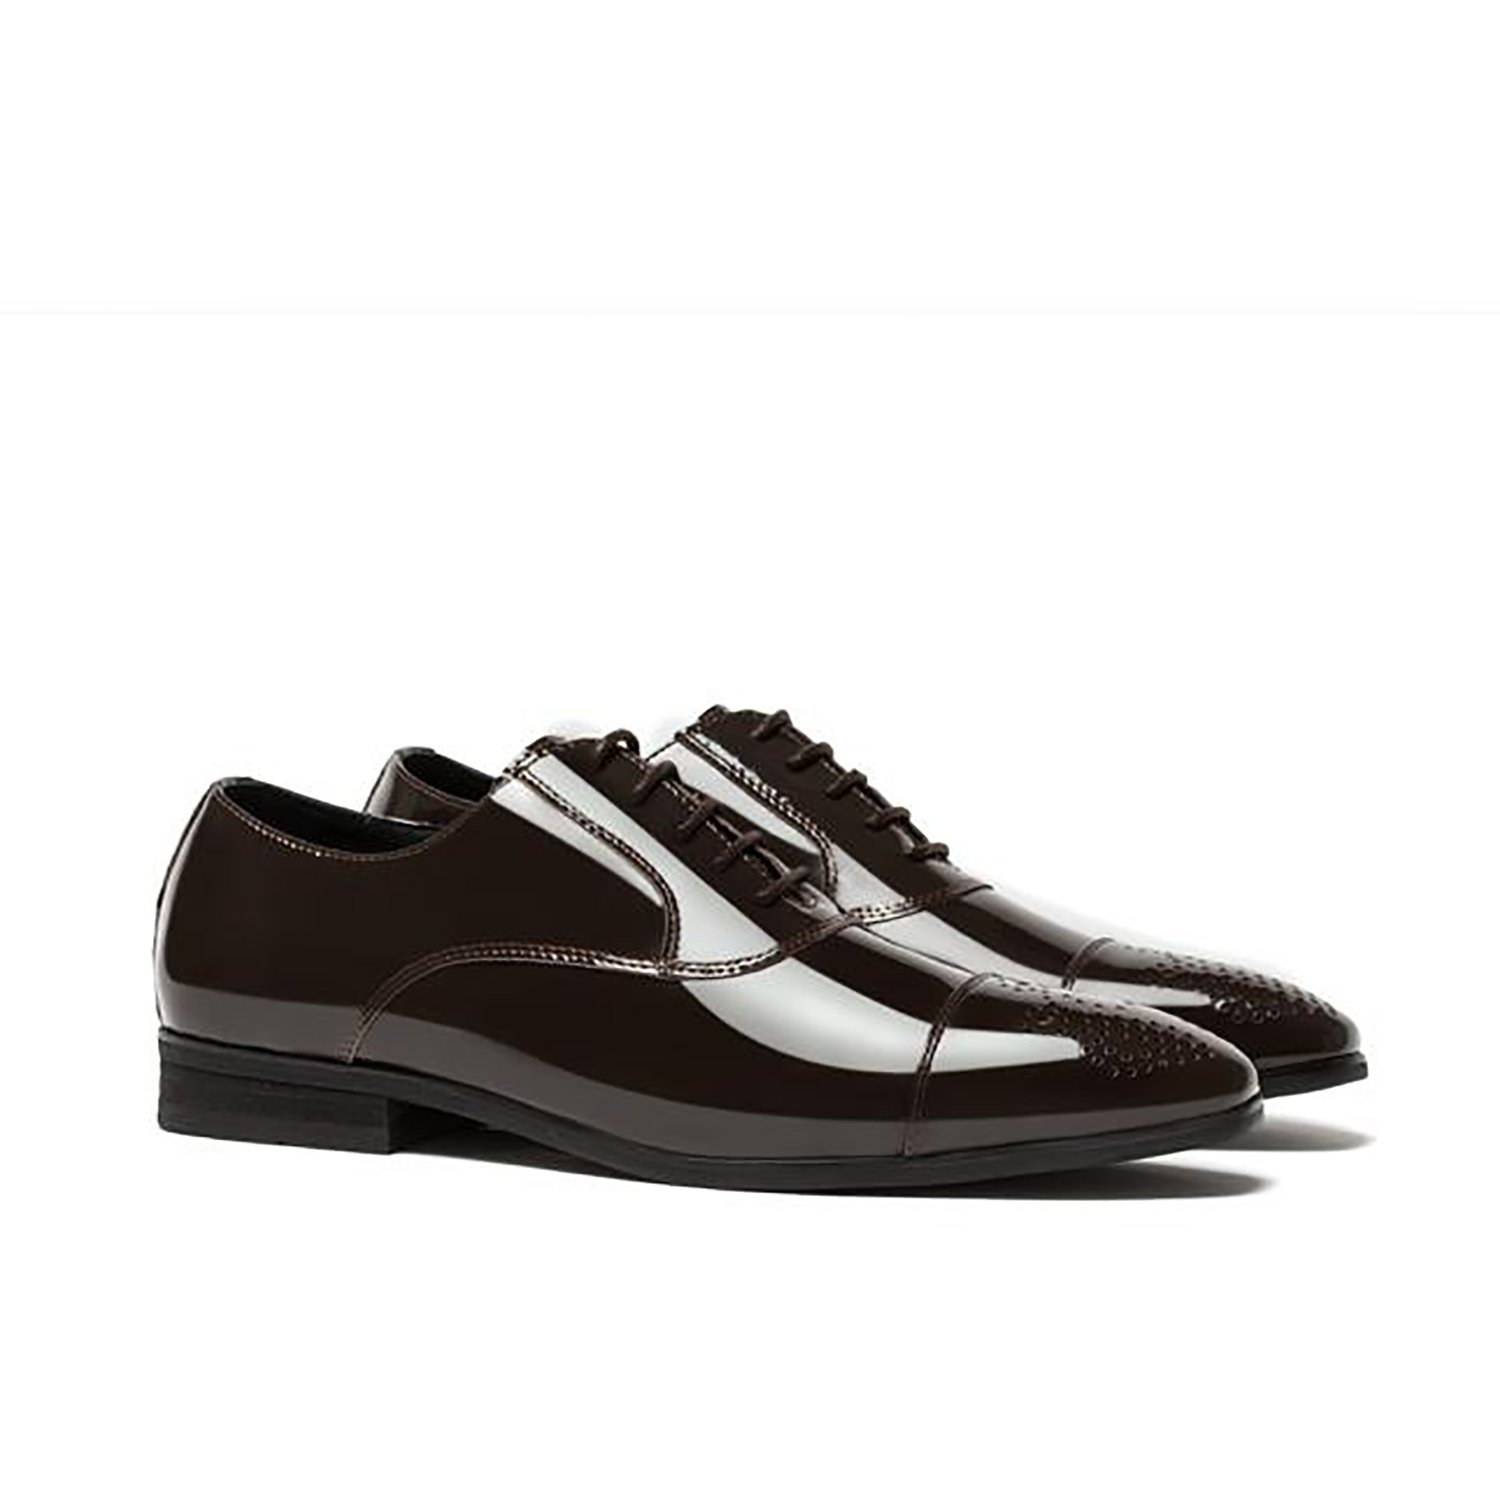 Opp Leather Dress Men Shoes Brown